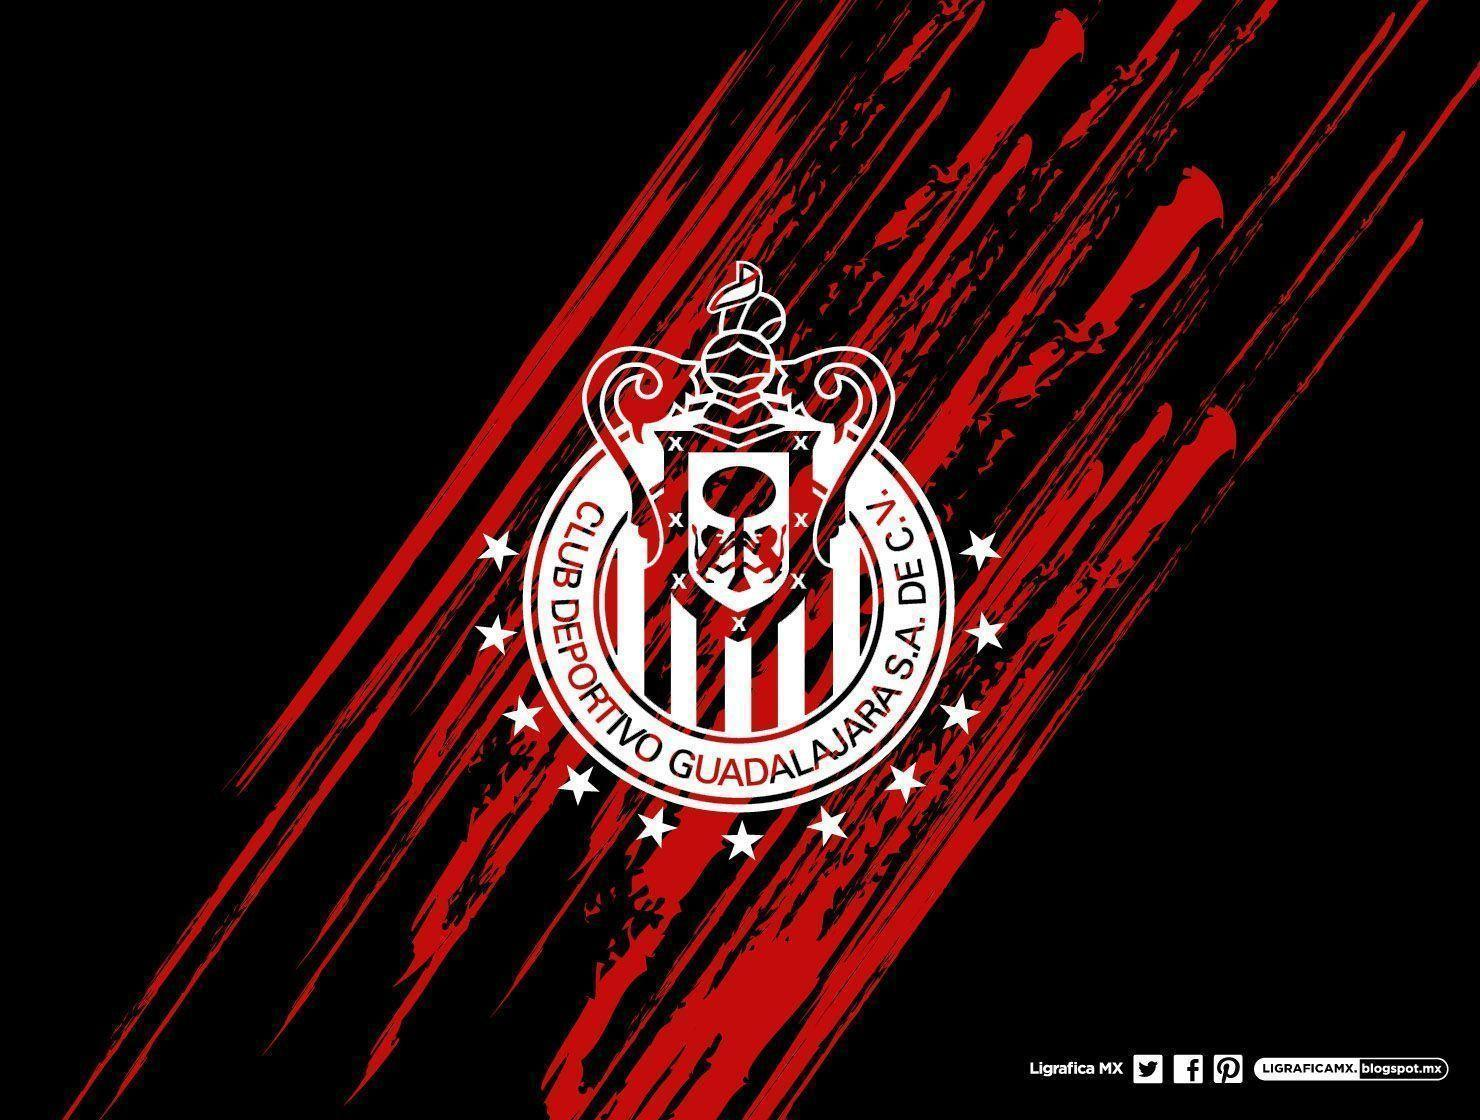 CD Guadalajara Wallpaper 9   1480 X 1120 stmednet 1480x1120